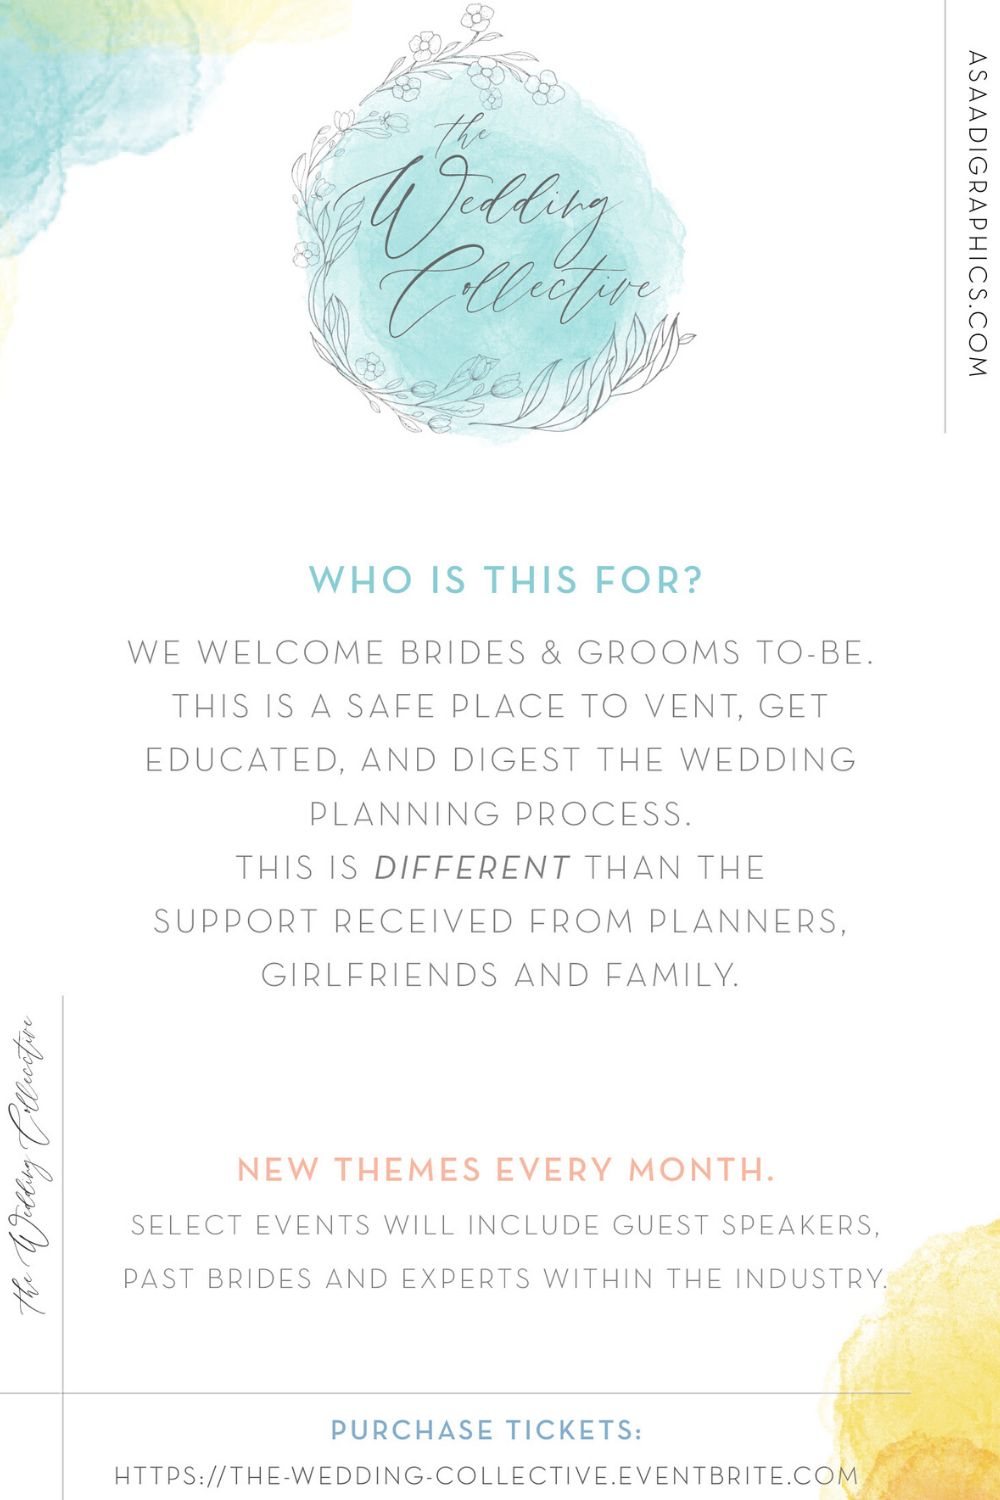 The Wedding Collective | our wedding worries SOLVED!  The Wedding Collective is a one-stop-shop for all your wedding-related concerns and questions!